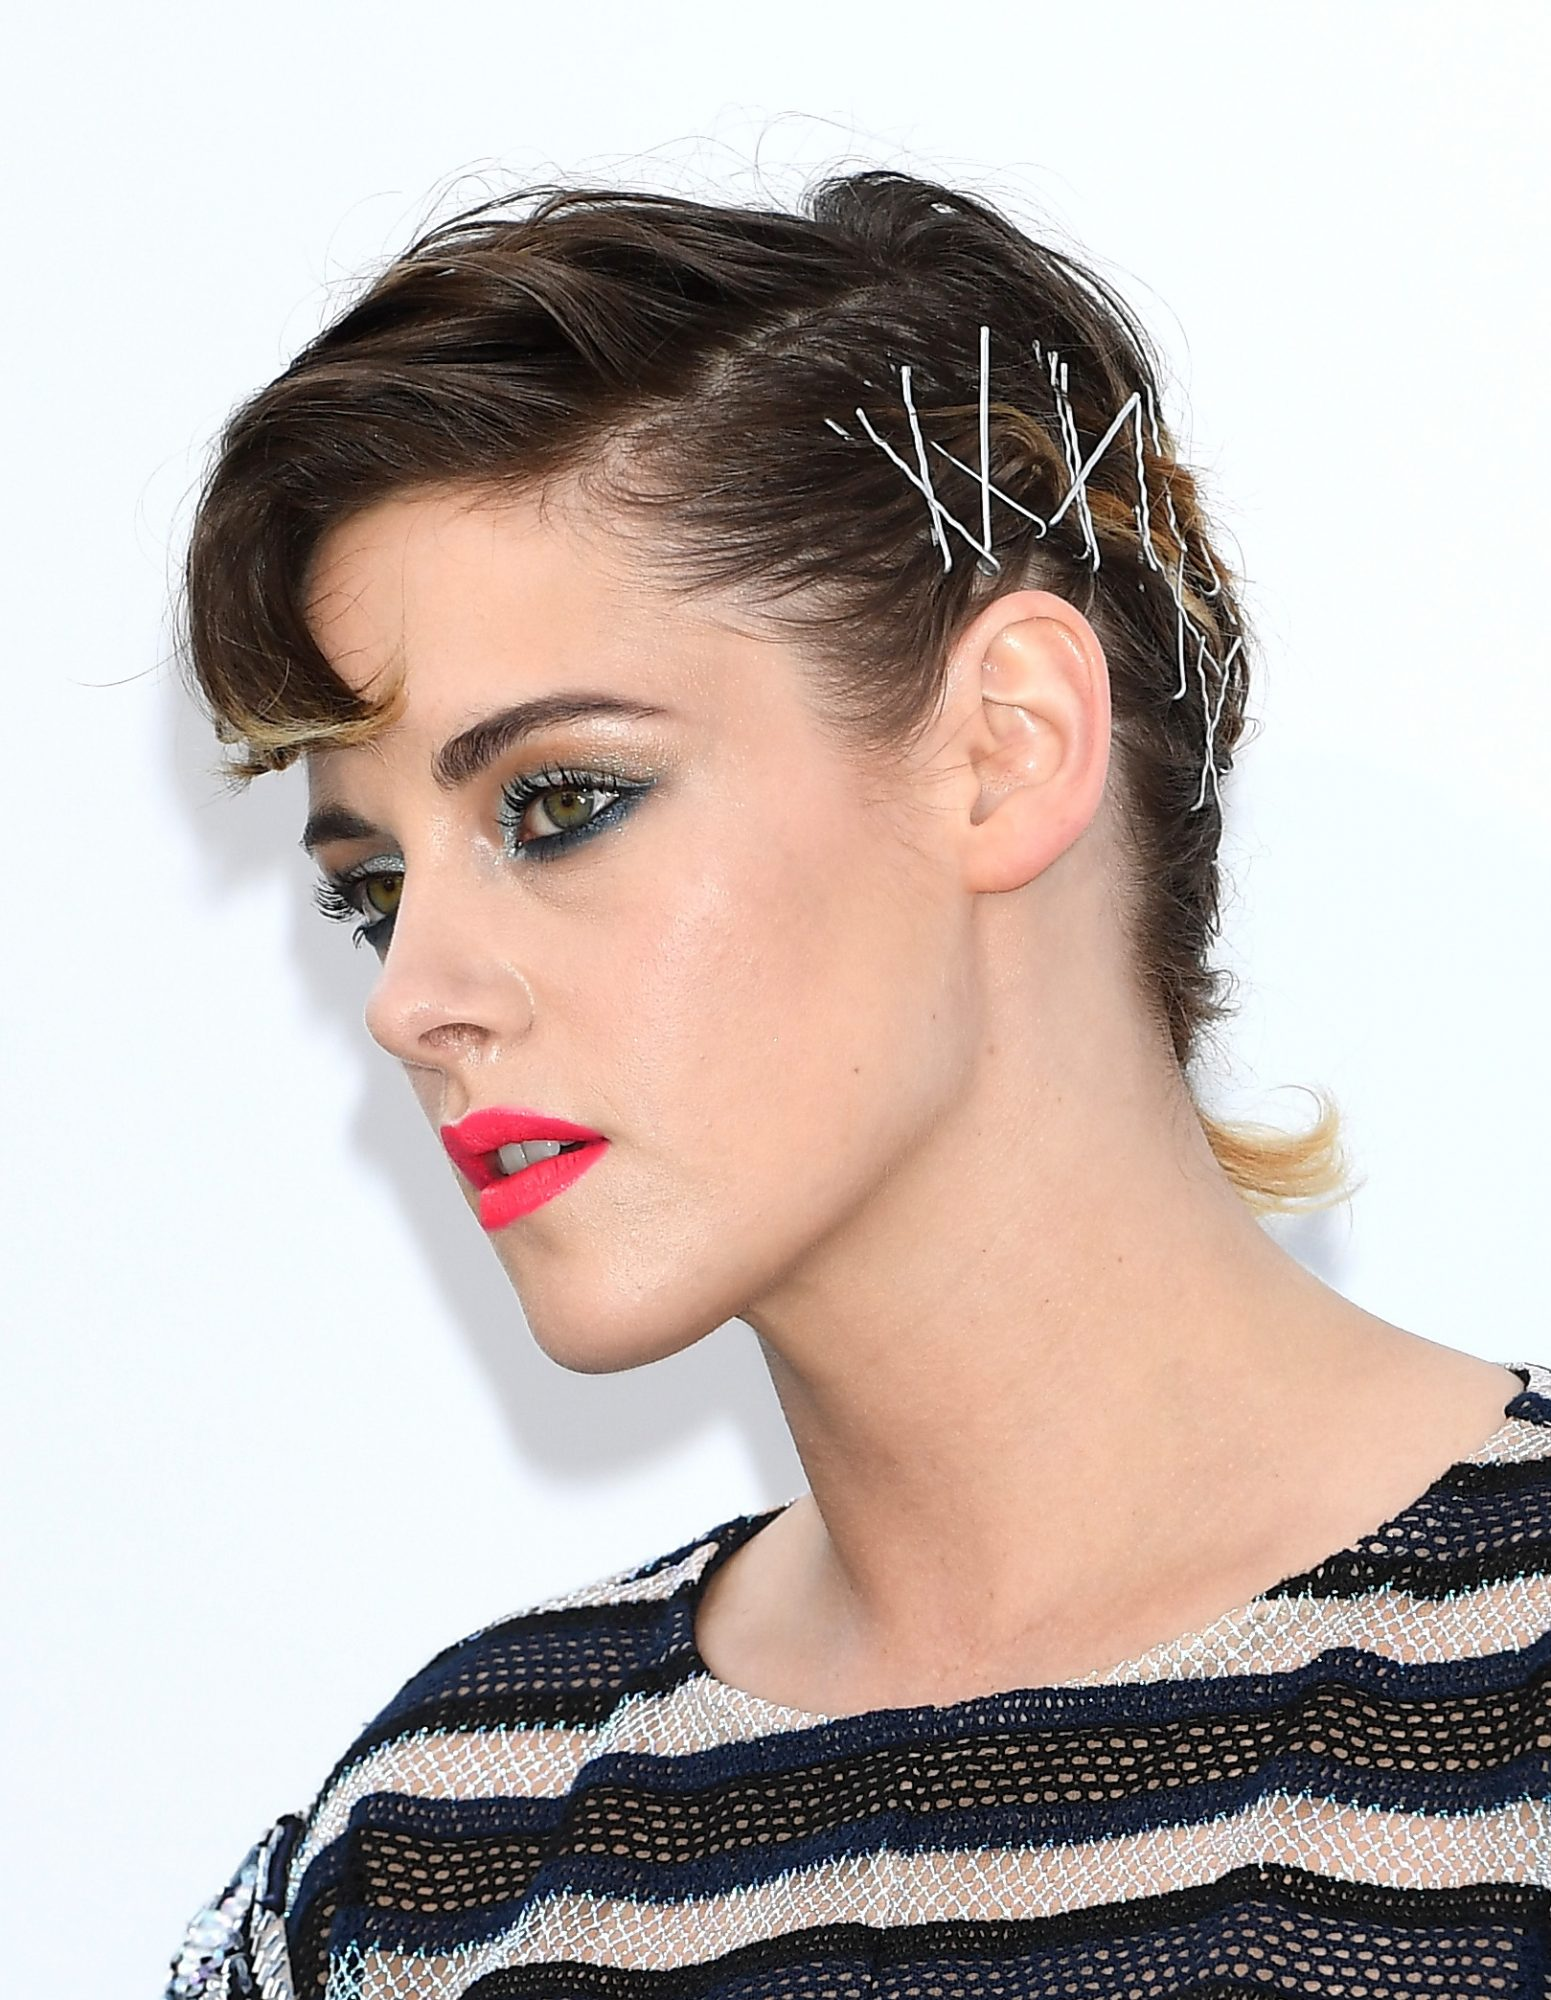 Every Bobby Pin You've Ever Lost Can Be Found inKristen Stewart's Pretty Hairdo